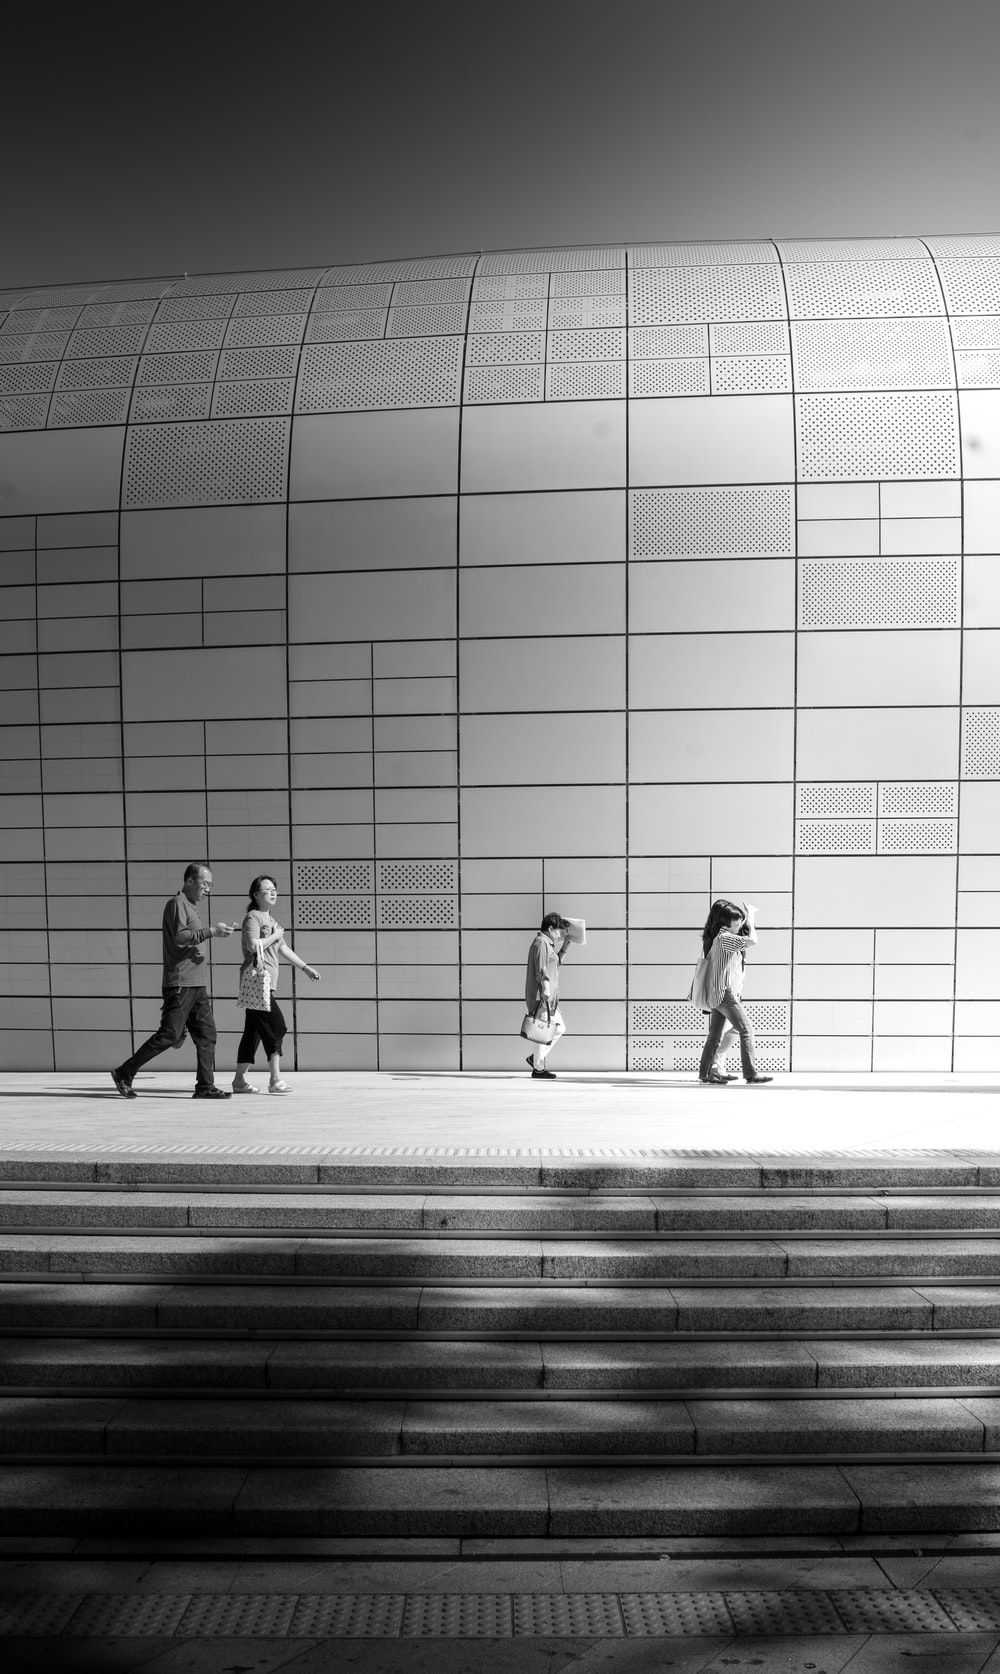 grayscale photo of people walking near building